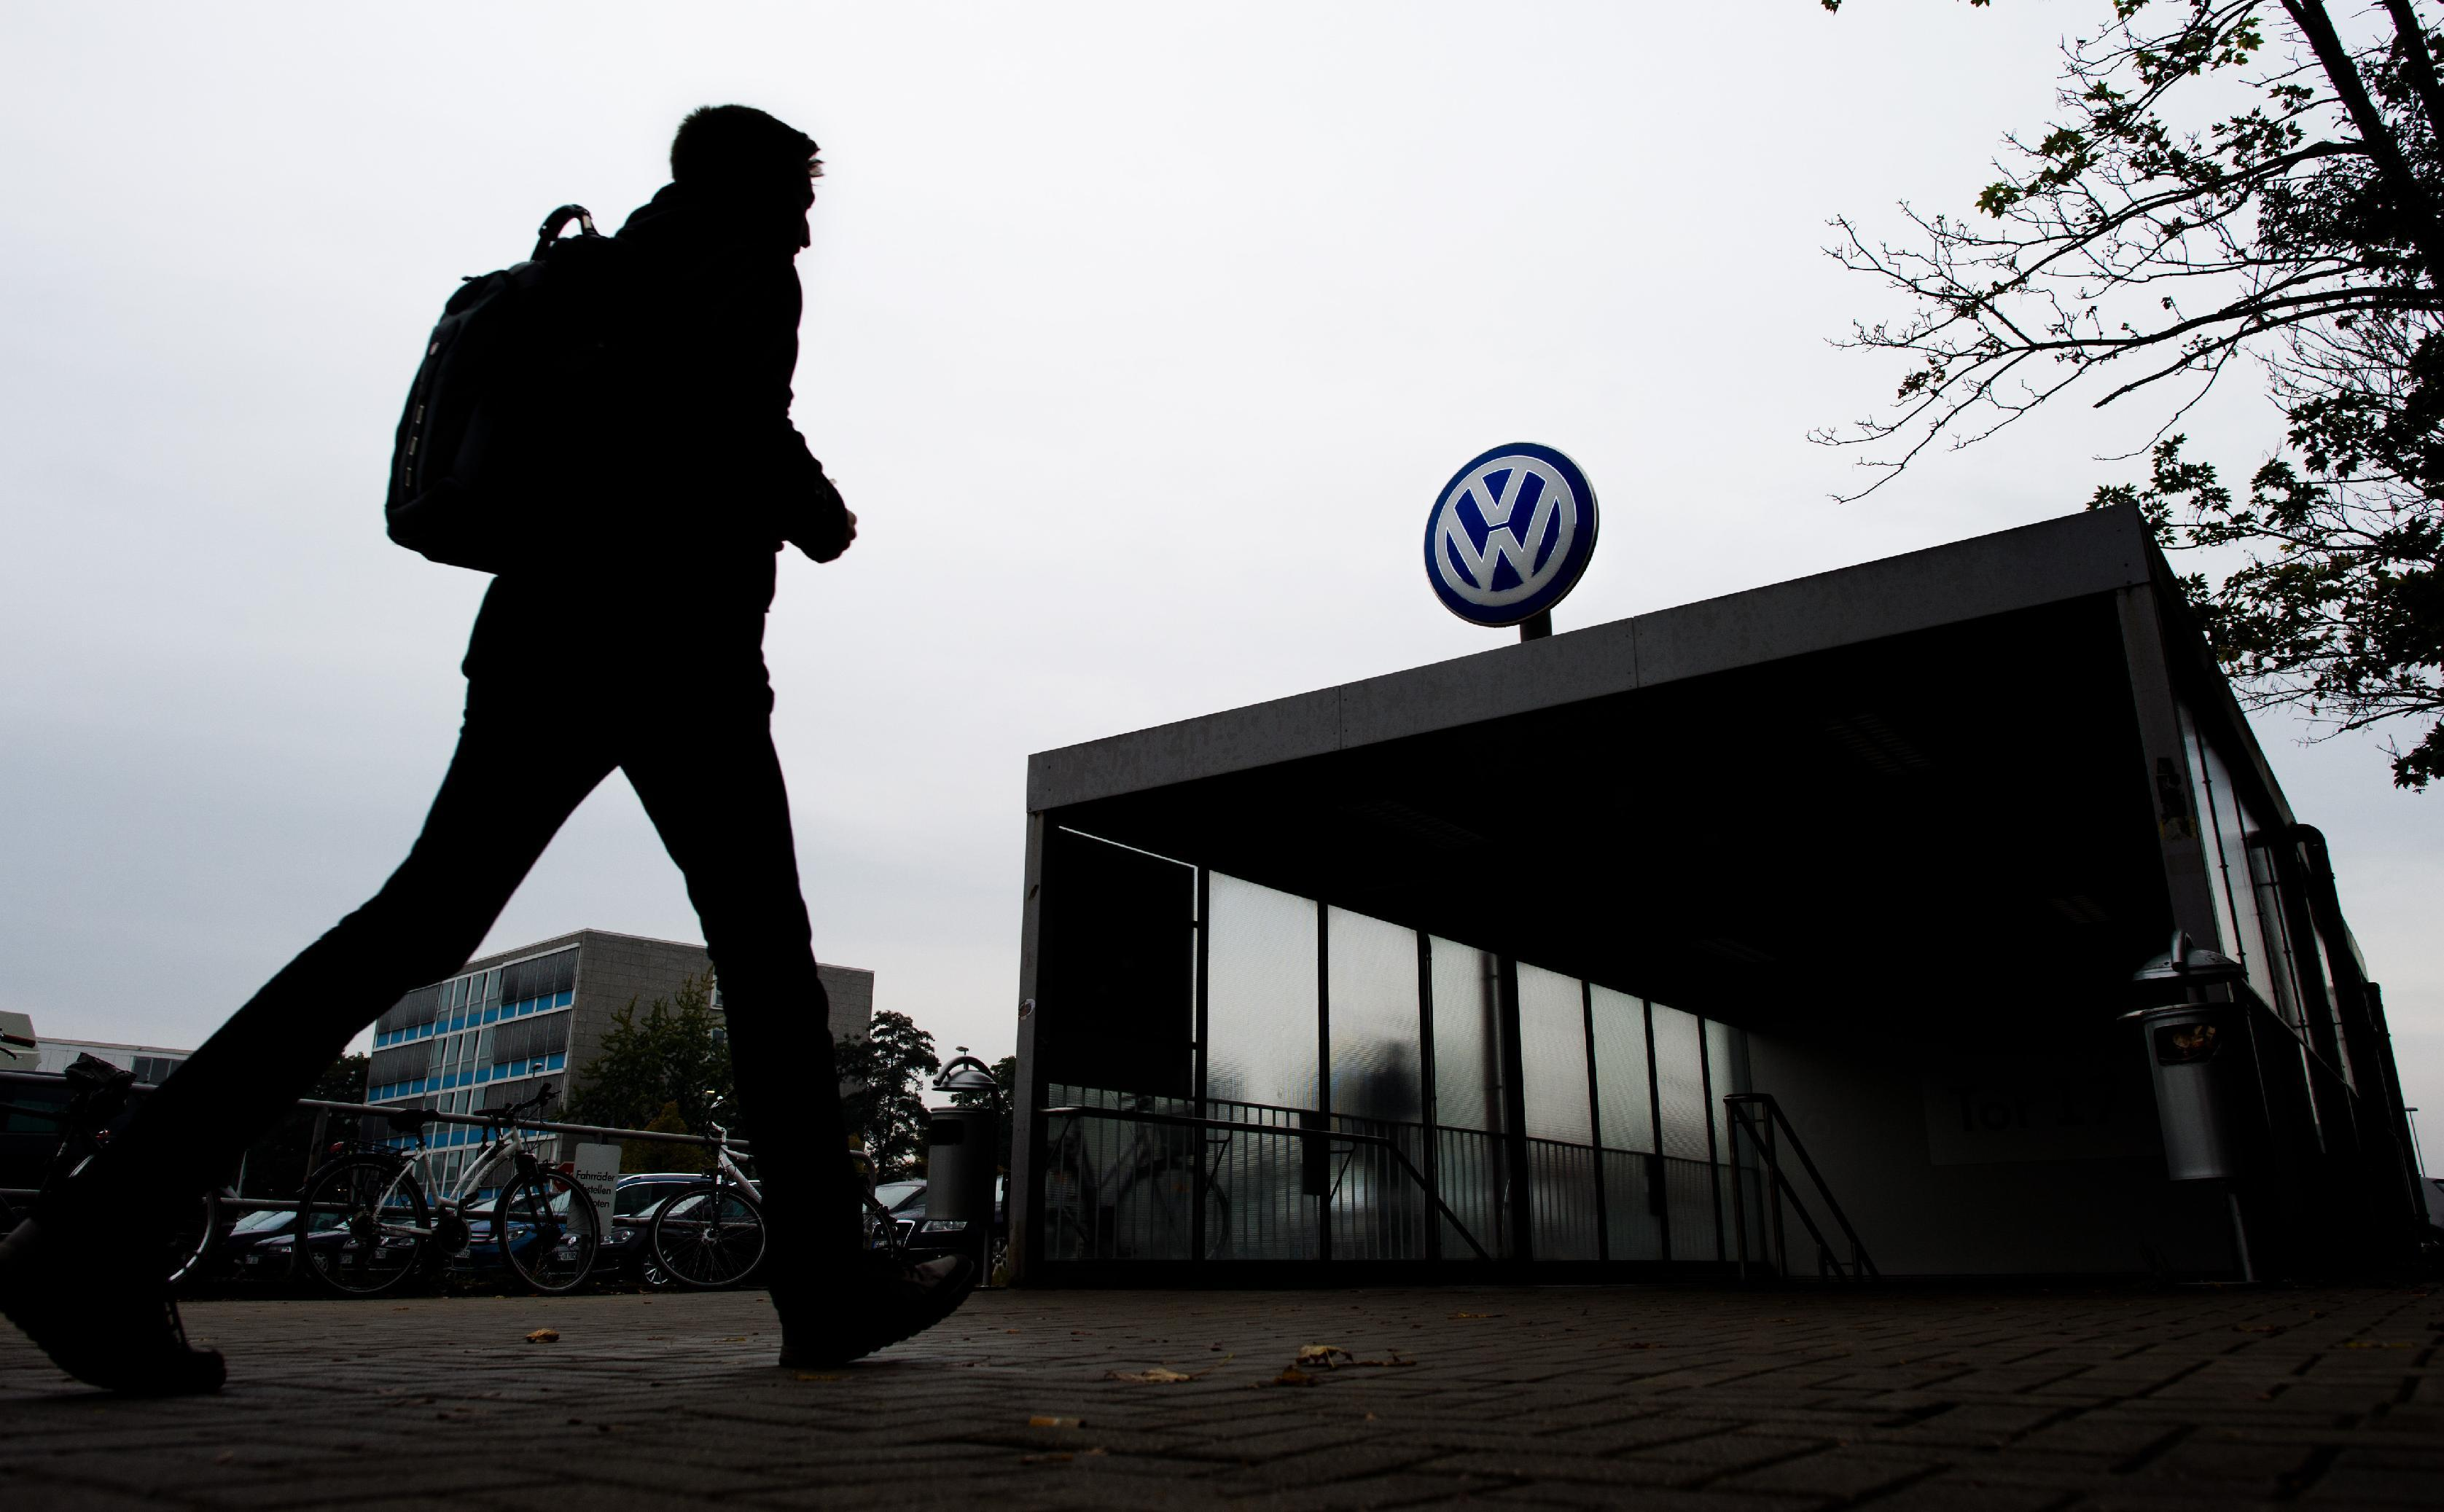 VW, with limited DC lobbying footprint, braces for Congress